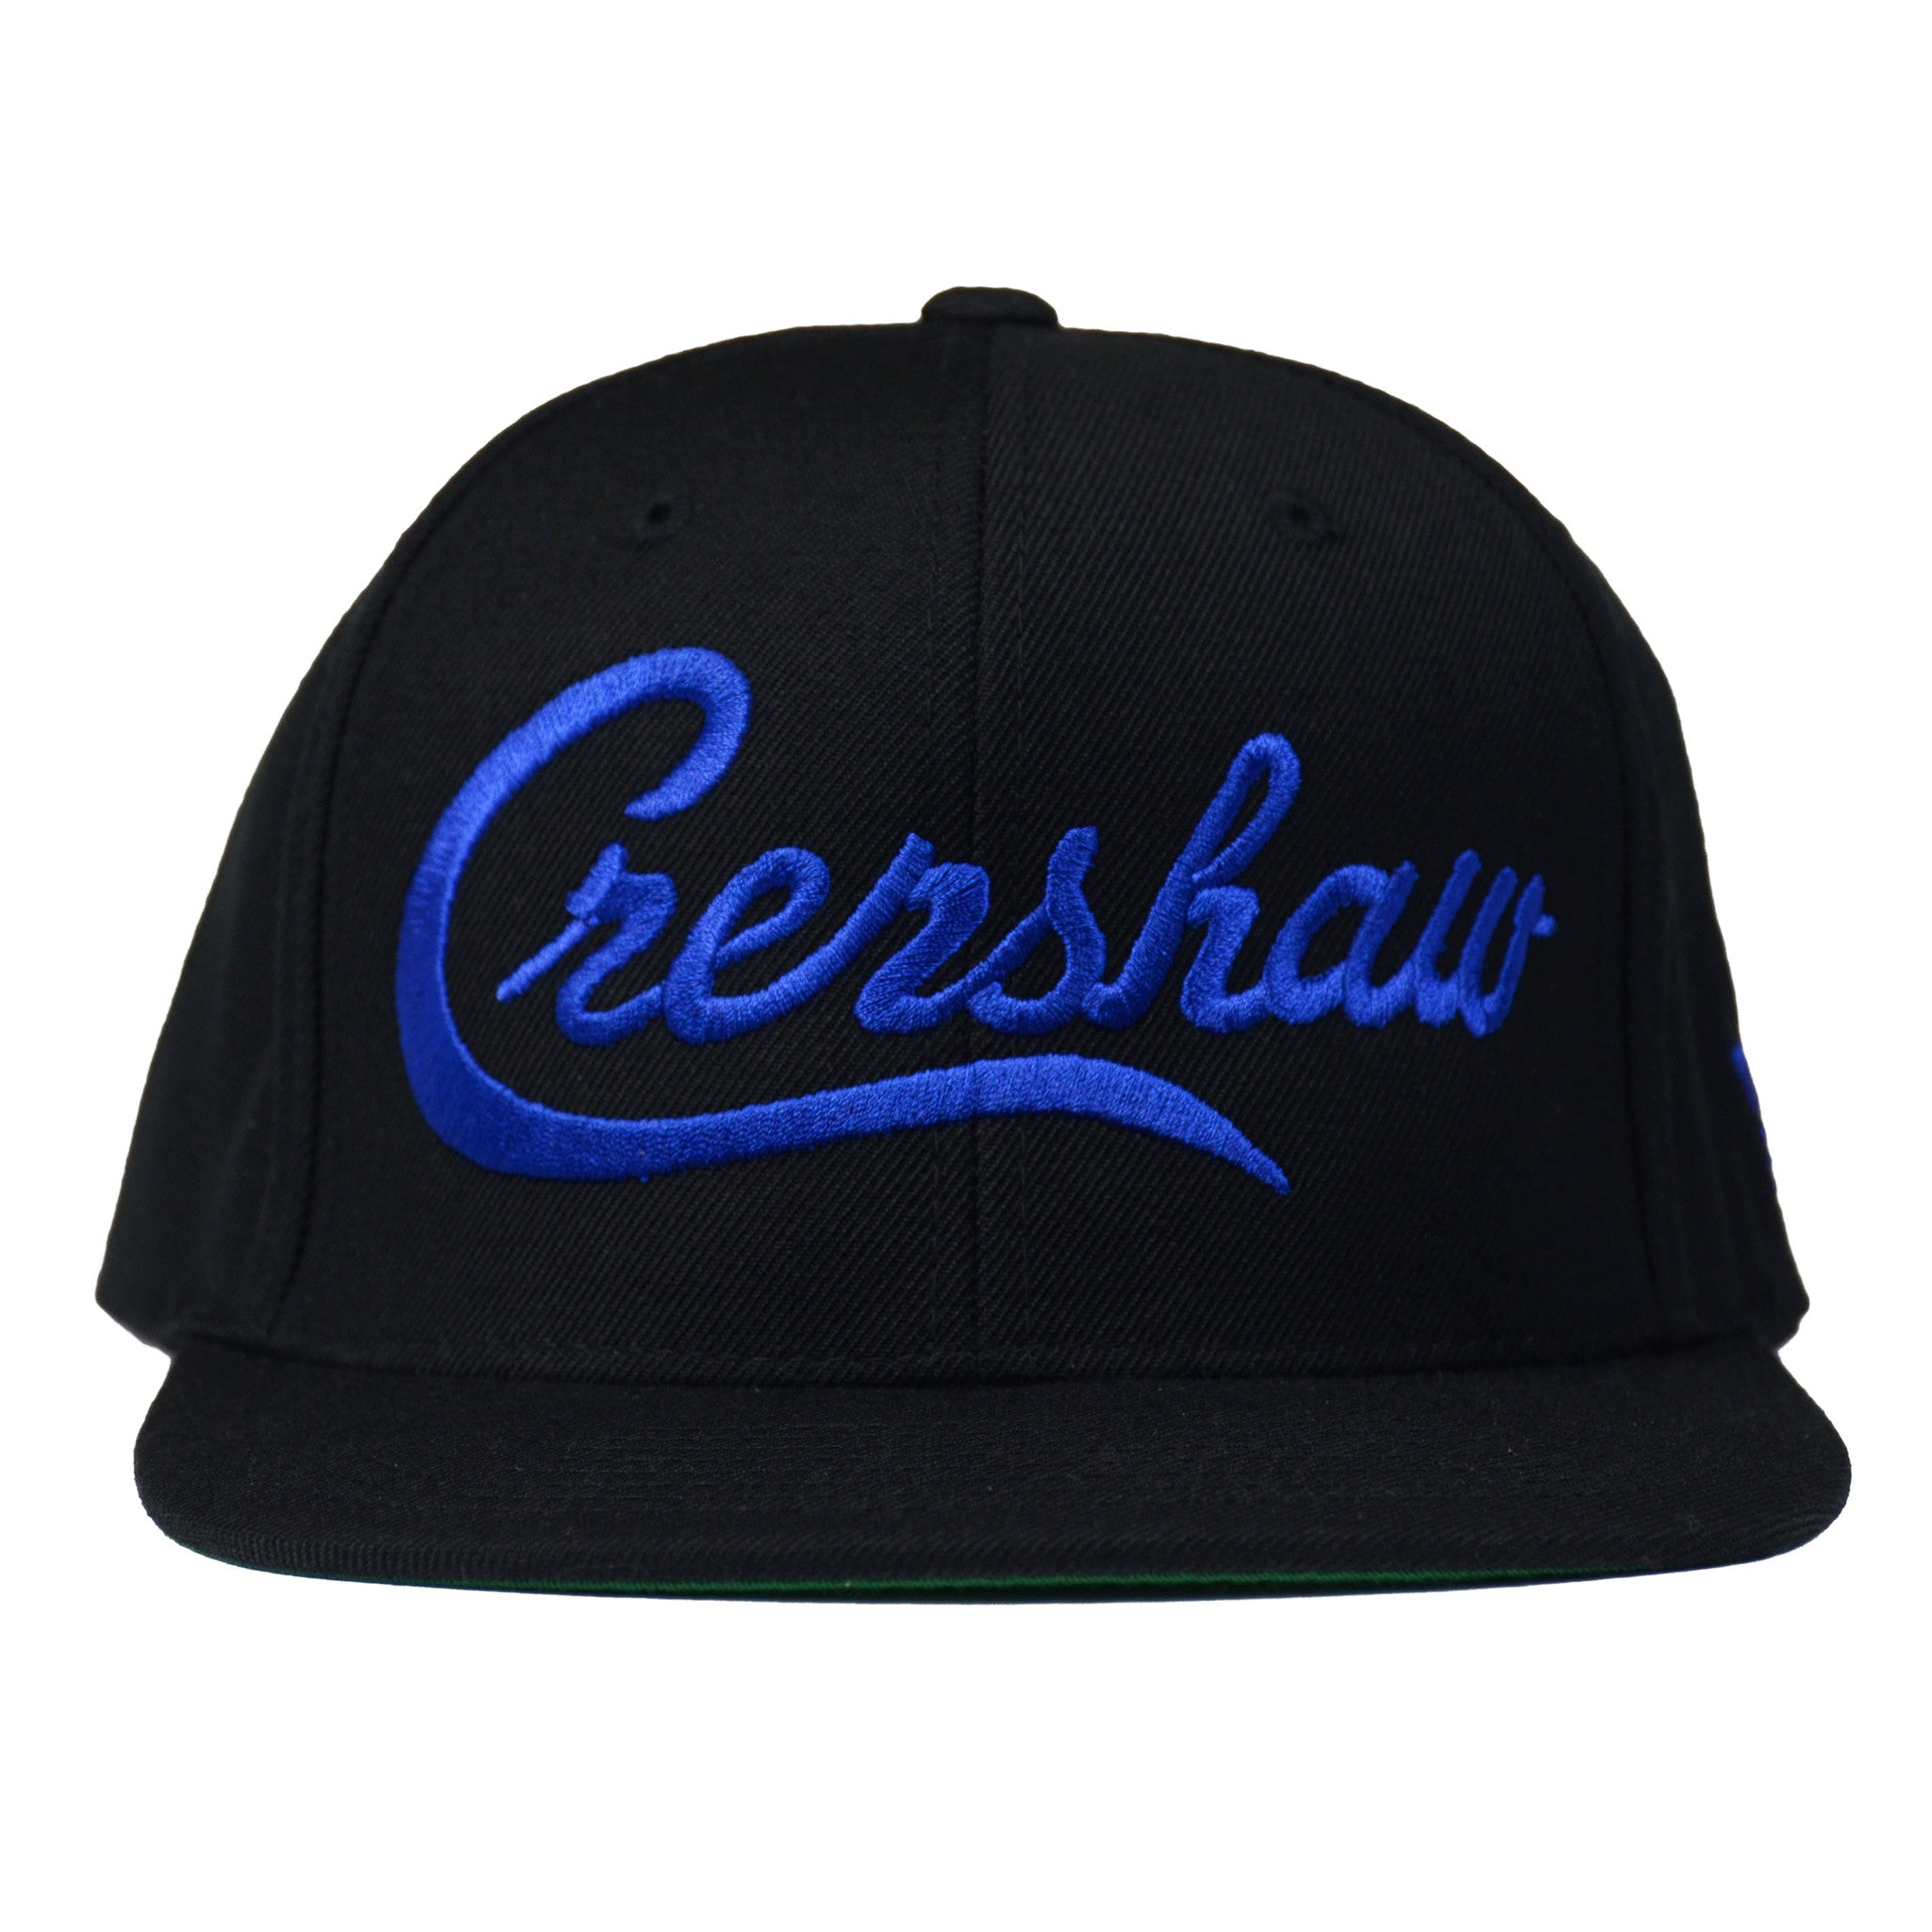 ab7b45c7ade Crenshaw Snapback - Black Royal – The Marathon Clothing